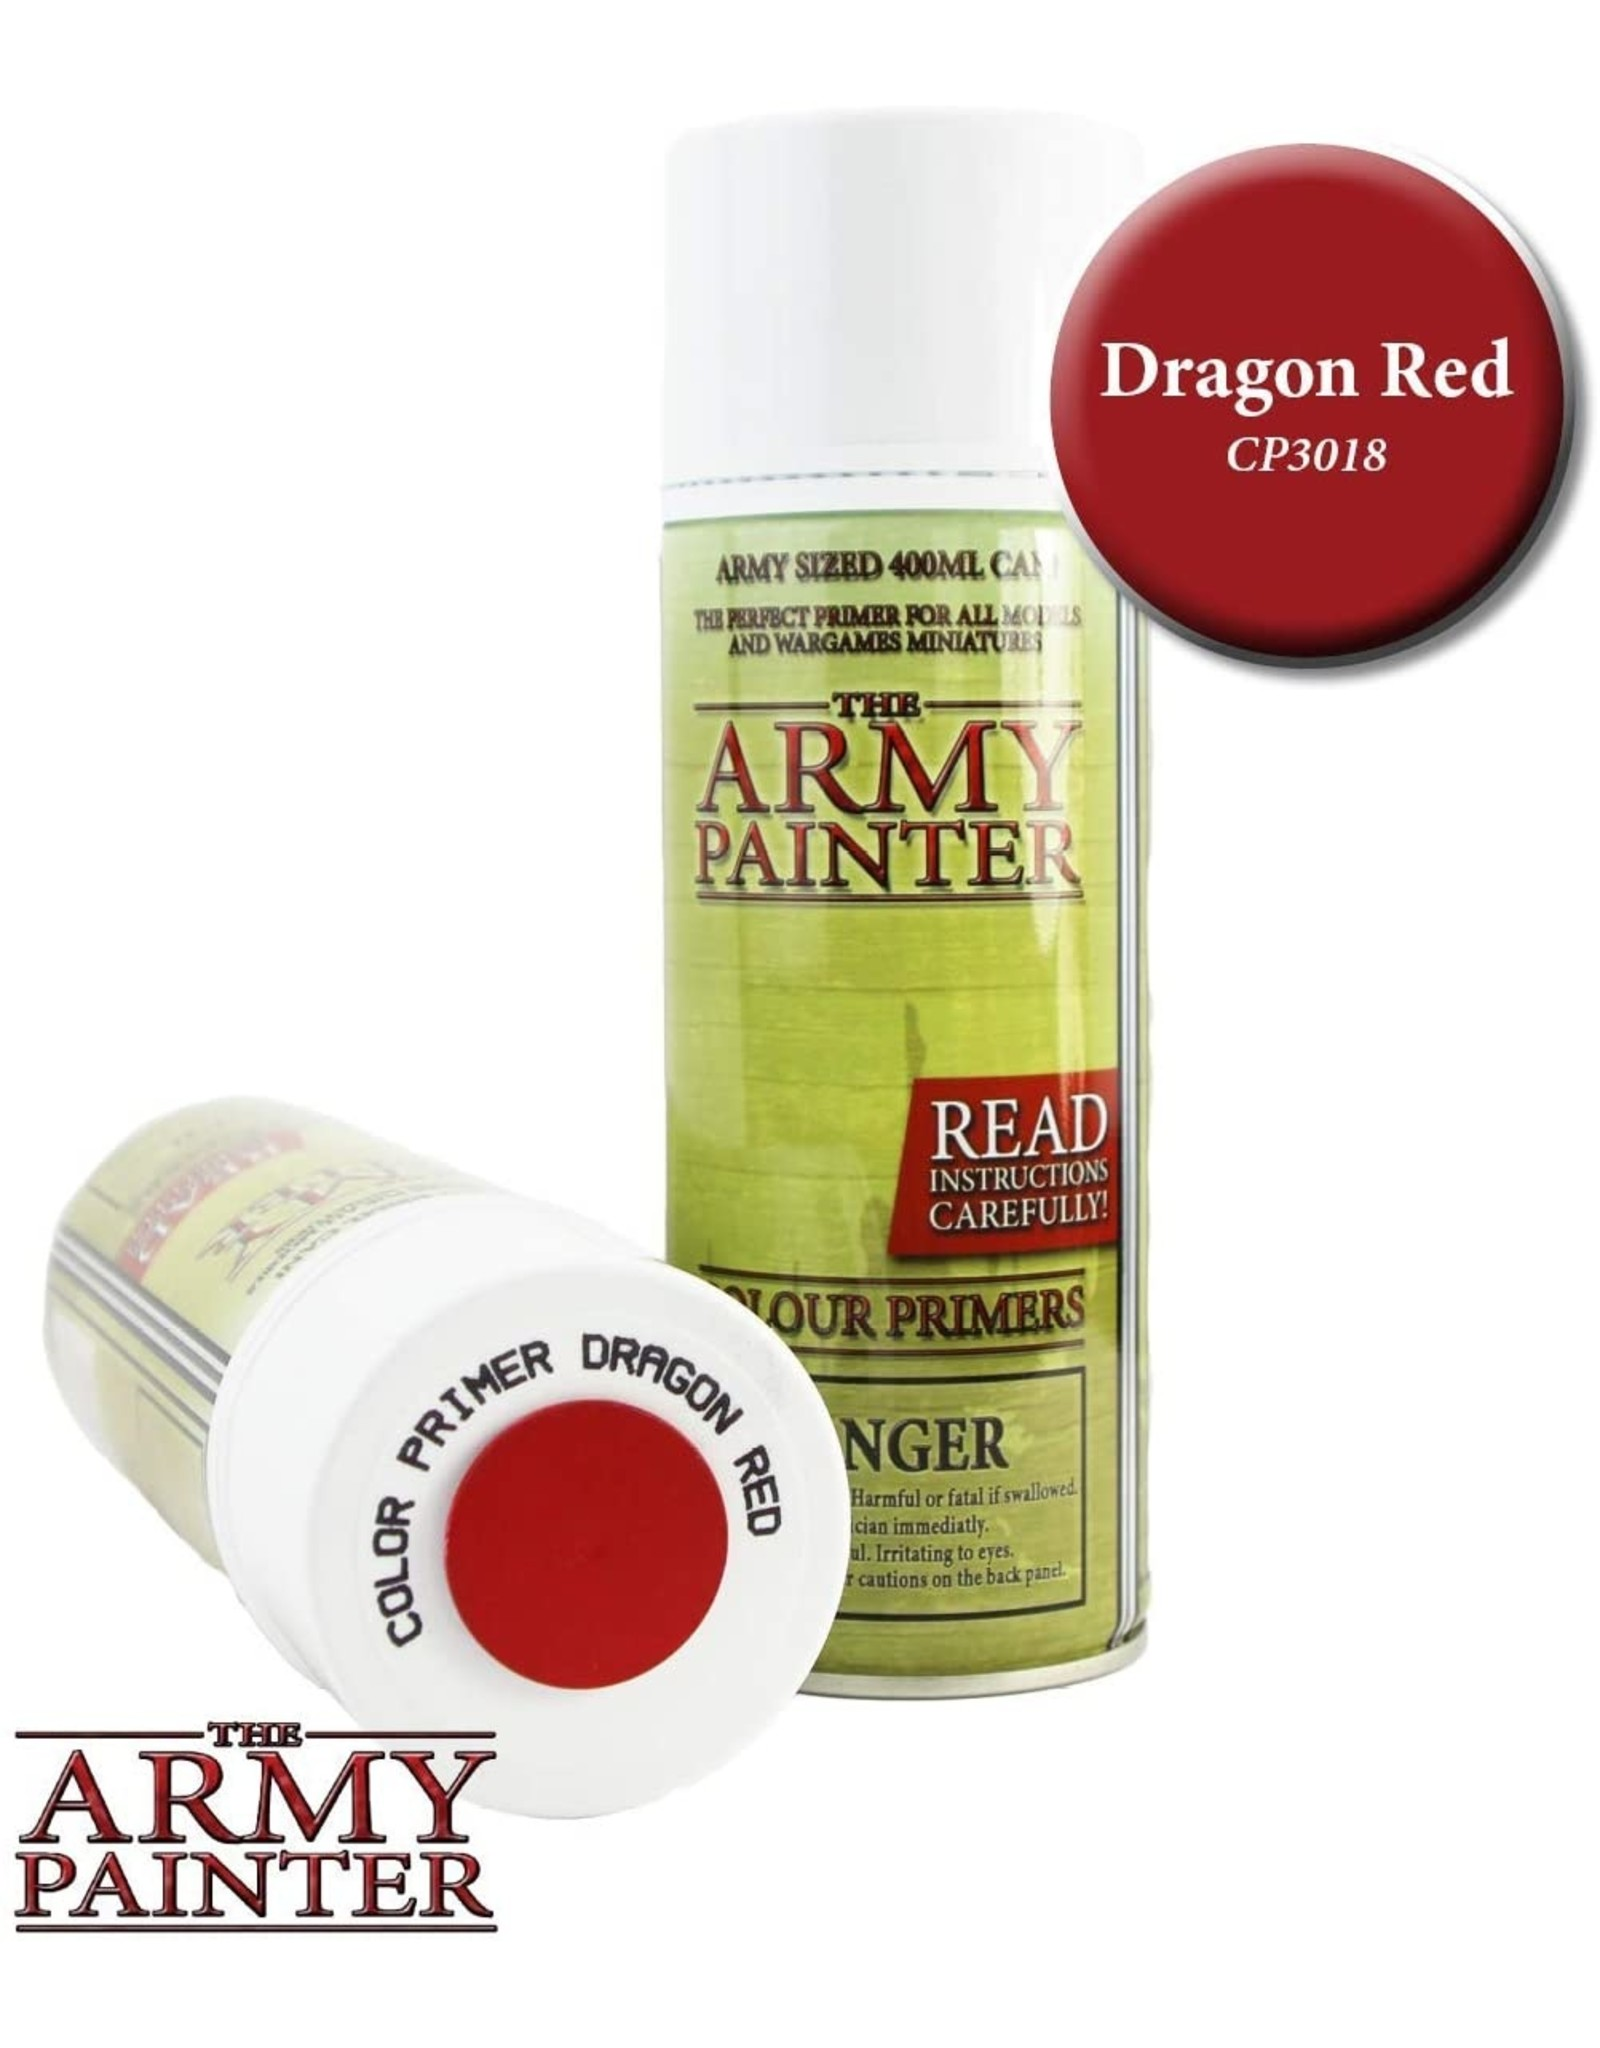 THE ARMY PAINTER ARMY PAINTER COLOR PRIMER DRAGON RED